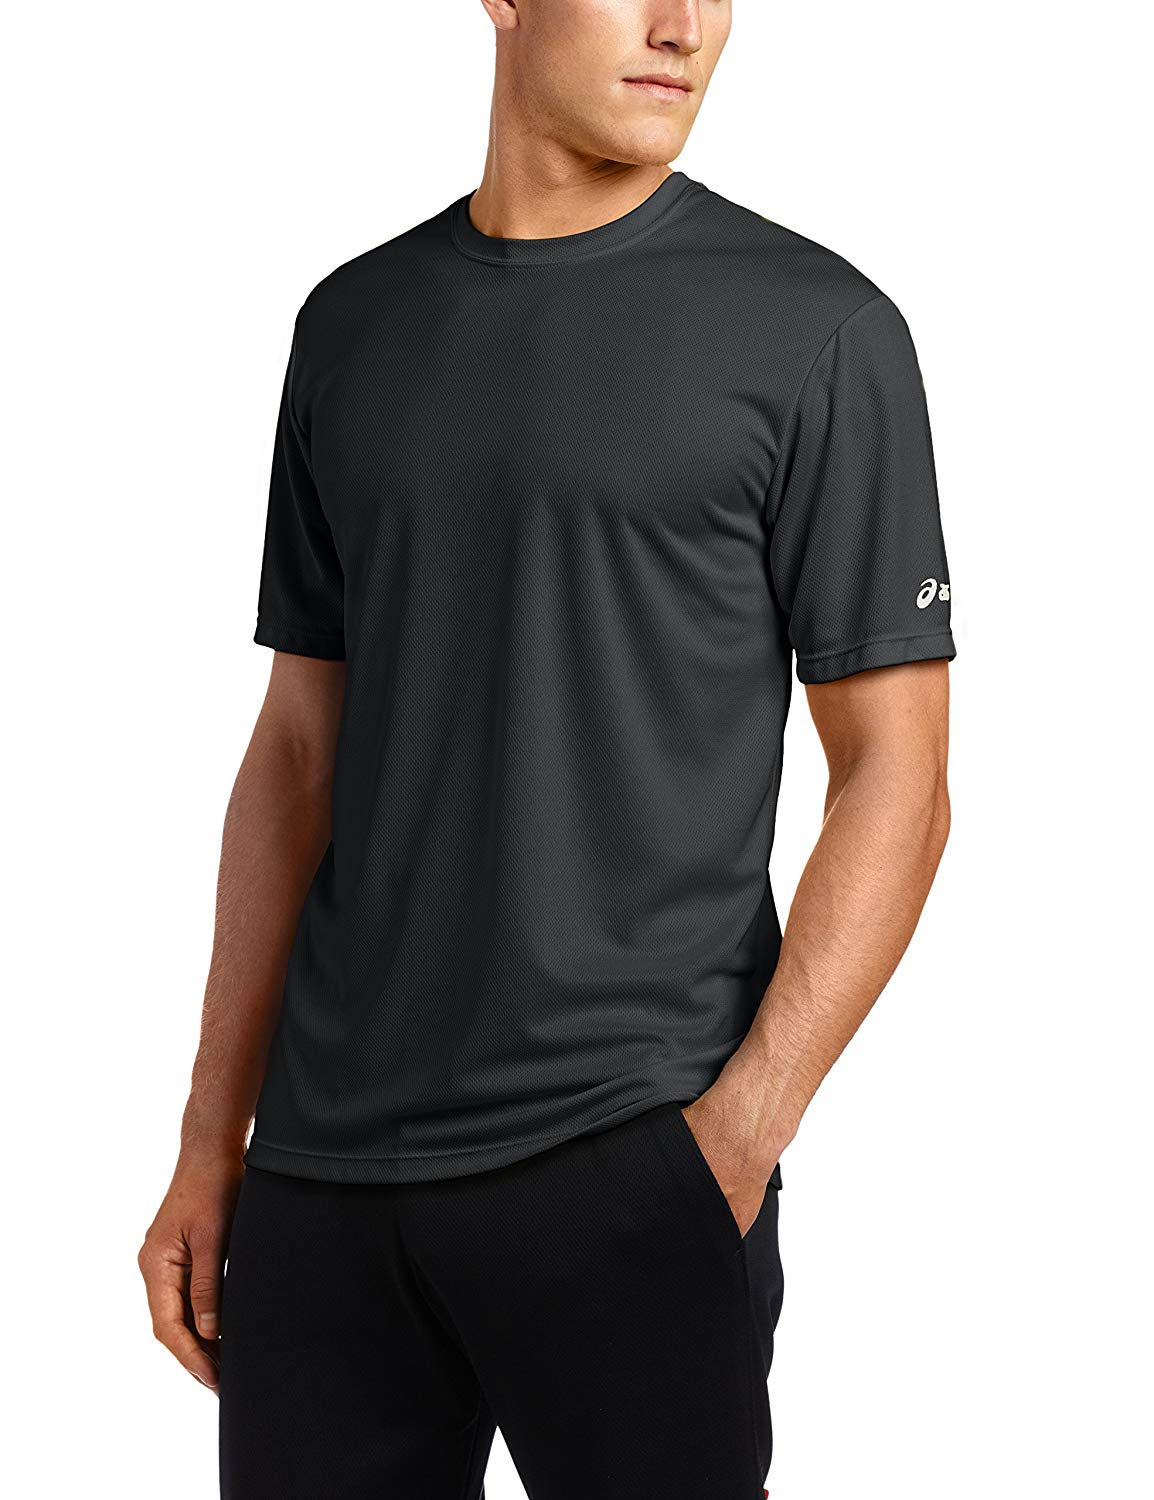 Men's running shirt from Amazon